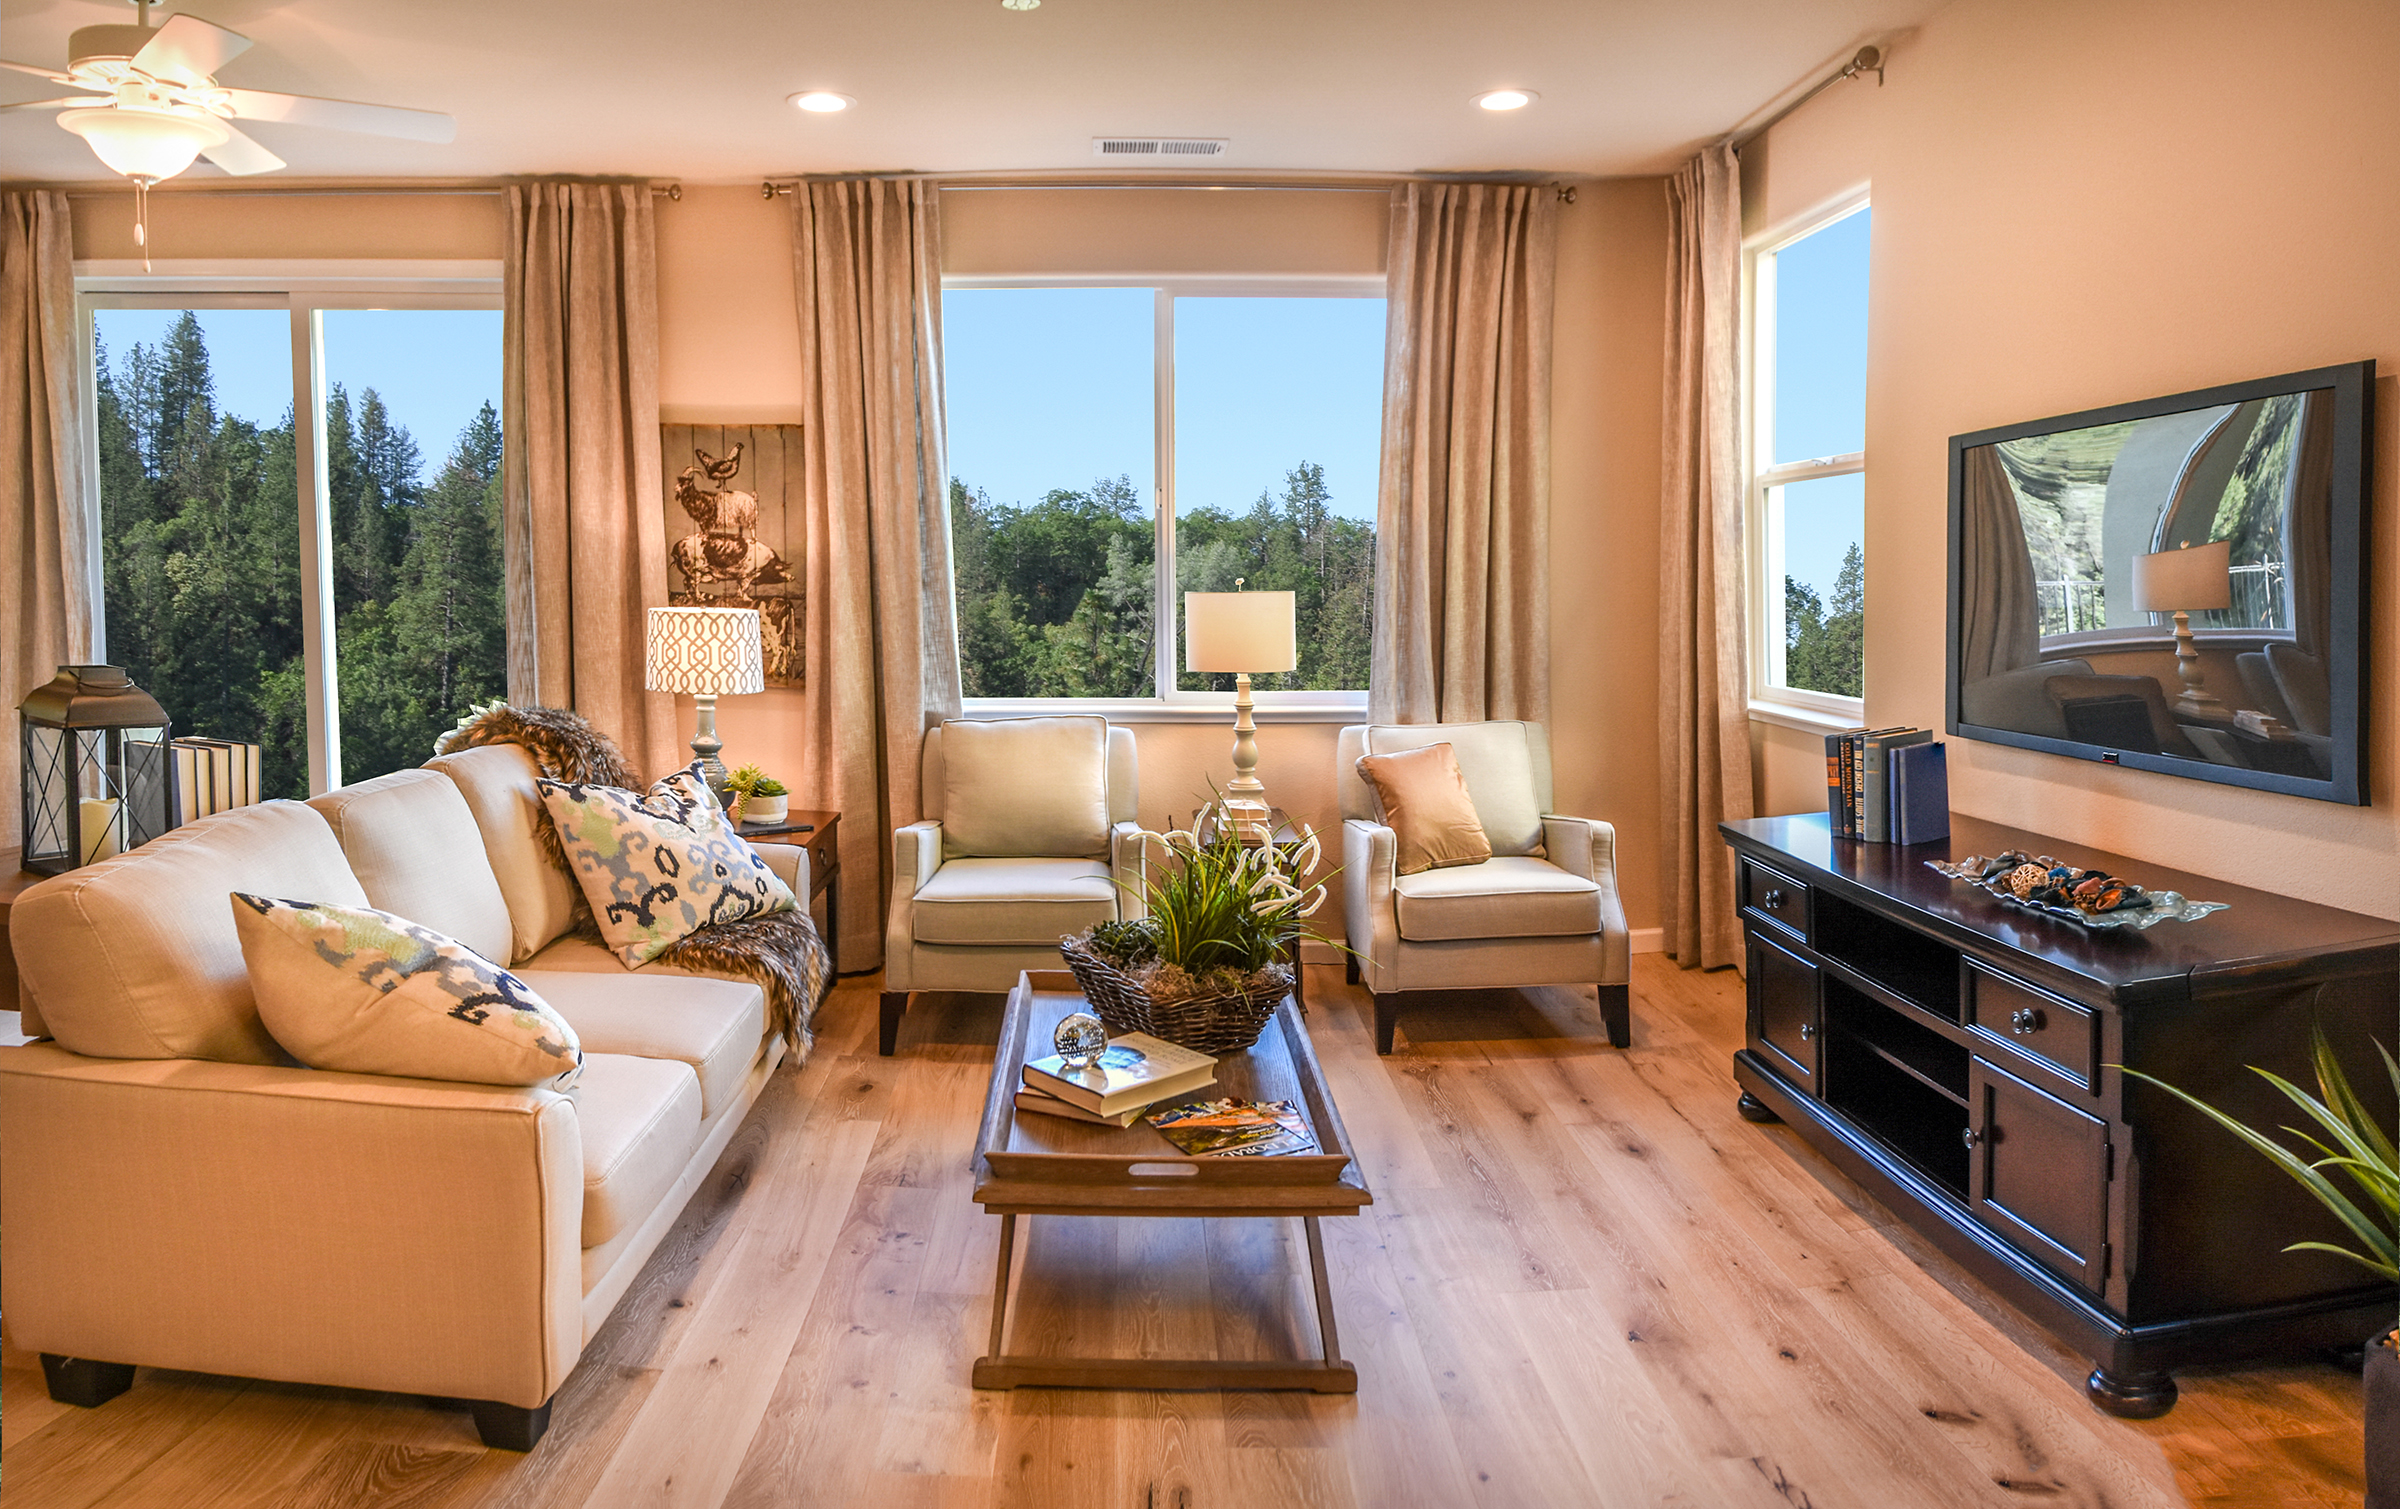 Unique Blend of Senior Living is Discovered at Silverado Village in Placerville